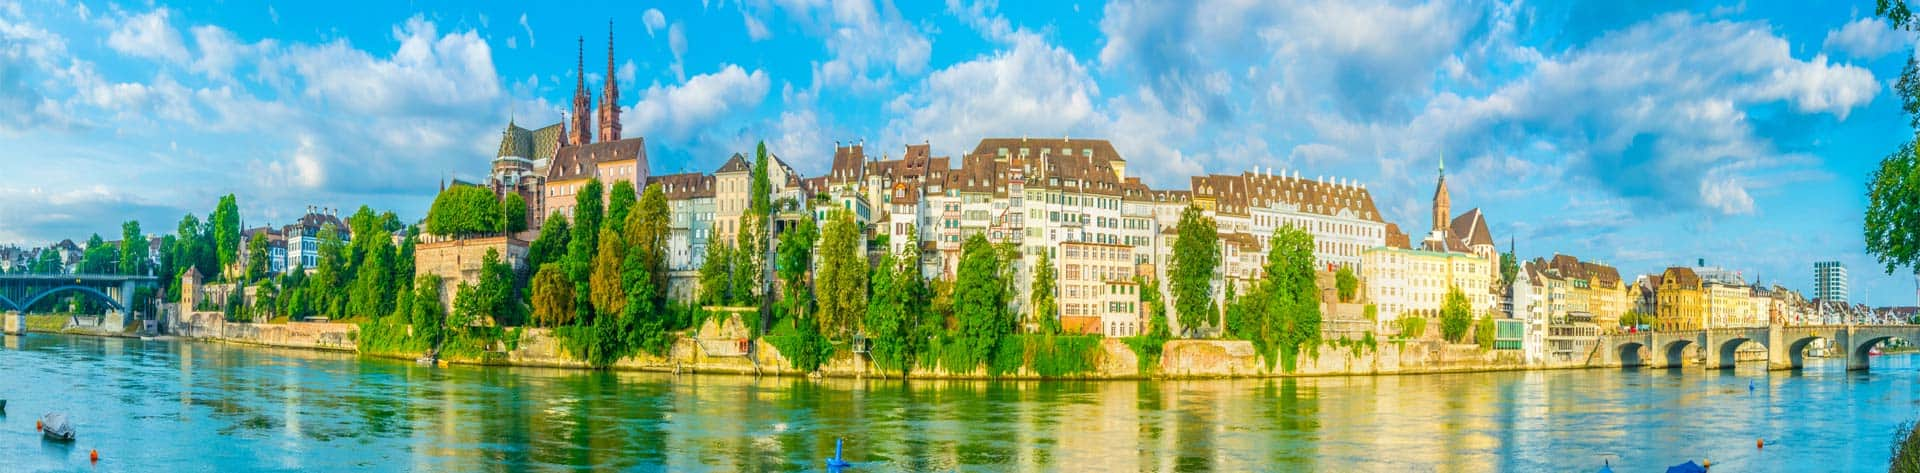 Riverside Of Rhine In Basel Dominated By Majestic Building Of Munster Church Switzerland AdobeStock 234796577 1920x